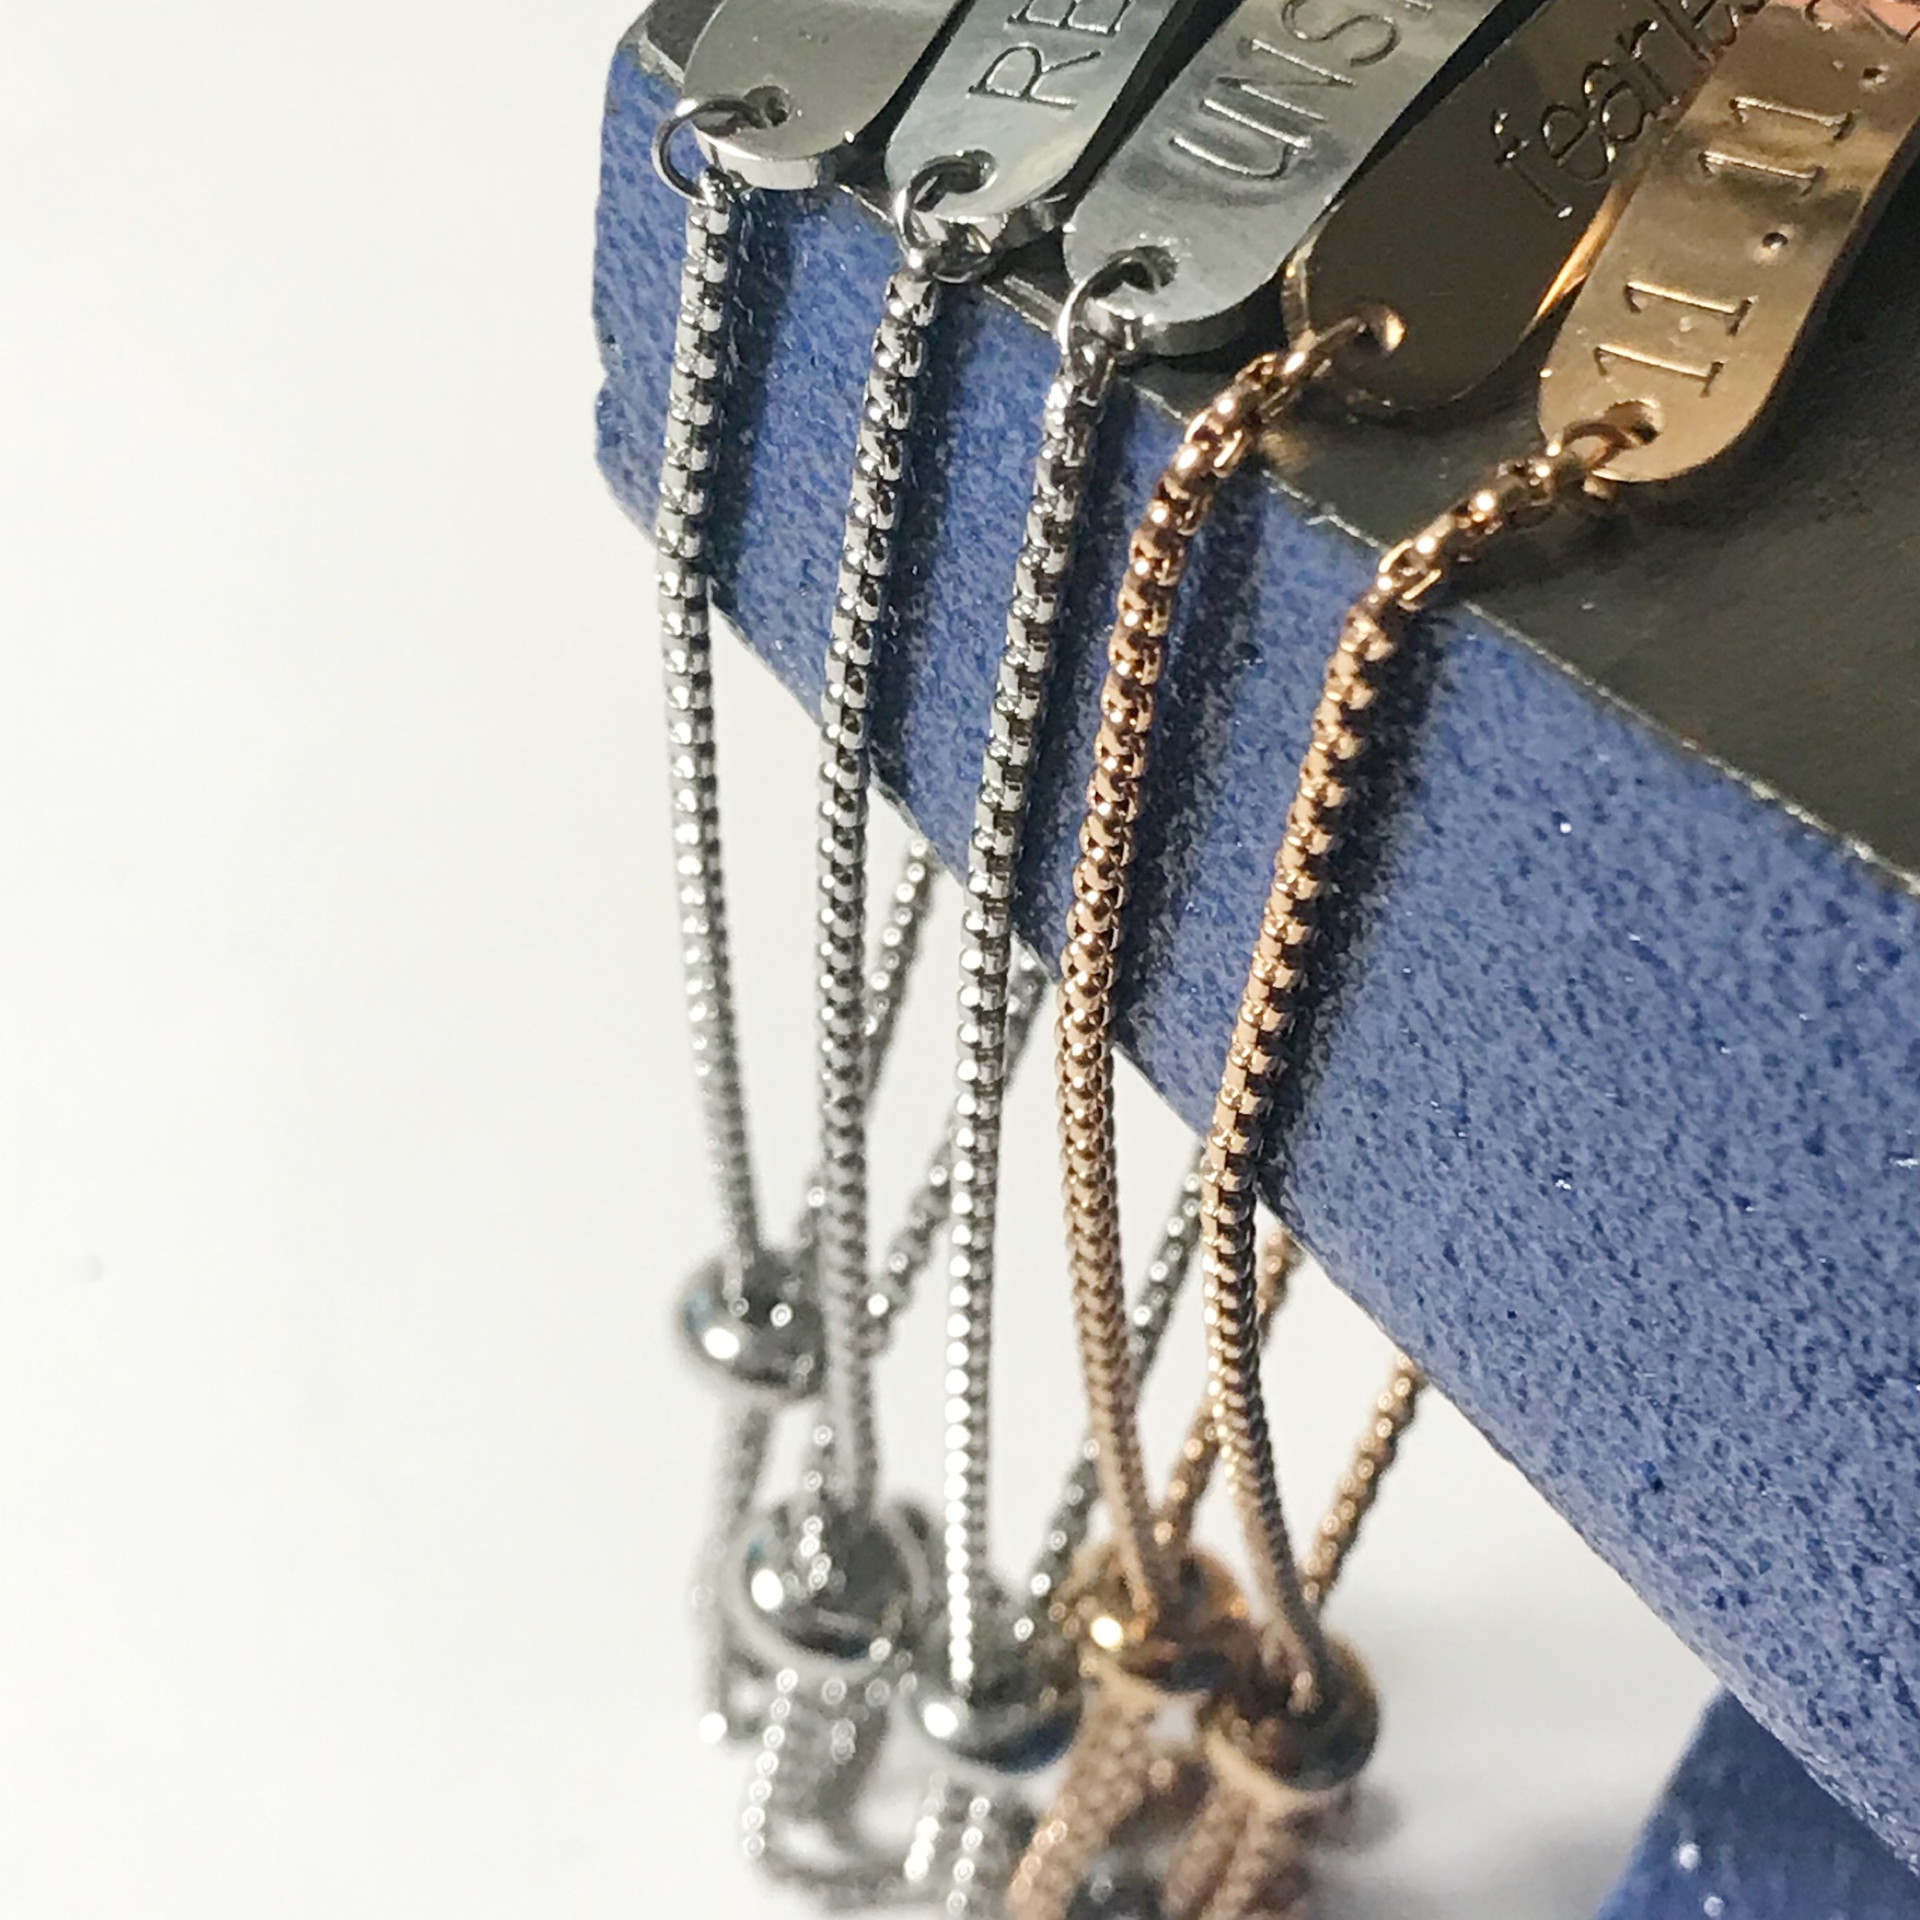 Snarklets bolo bracelets silver and rose gold stainless steel